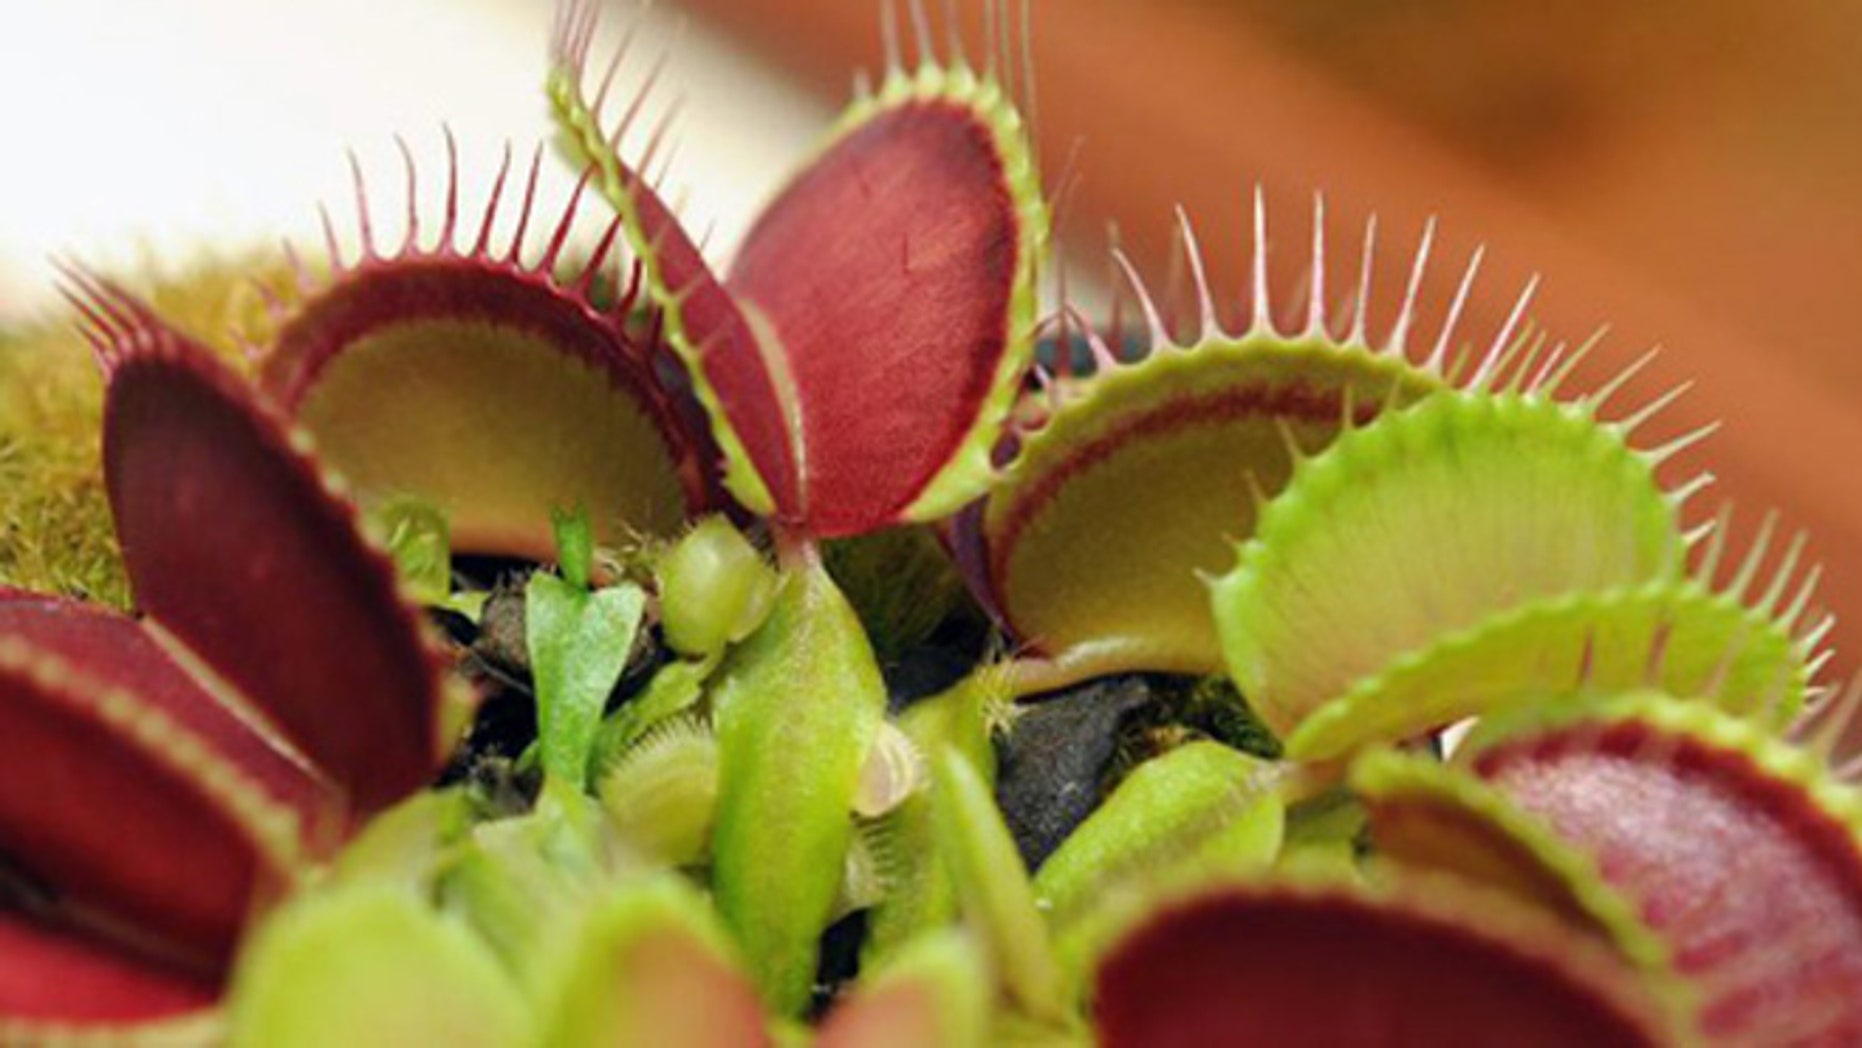 A venus fly trap plant.